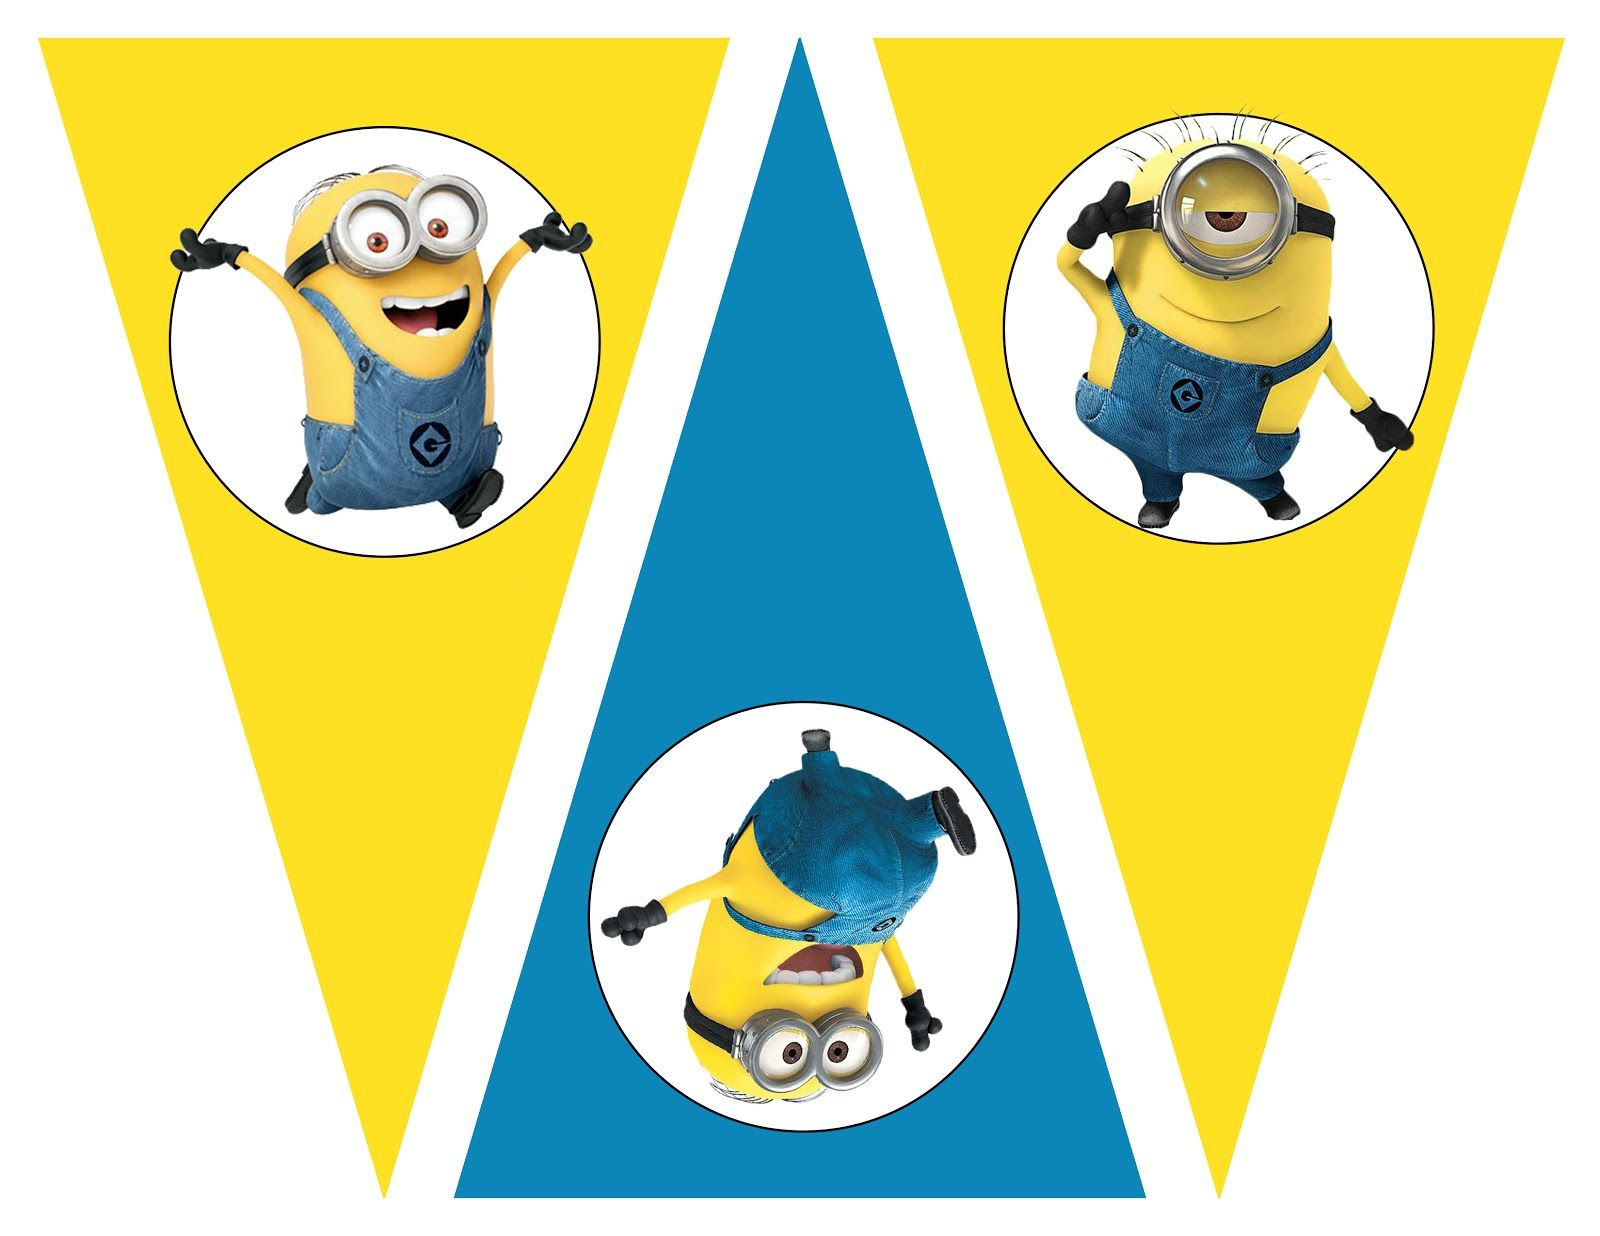 picture regarding Minion Logo Printable titled Cost-free Despicable me social gathering printables, birthday social gathering concept